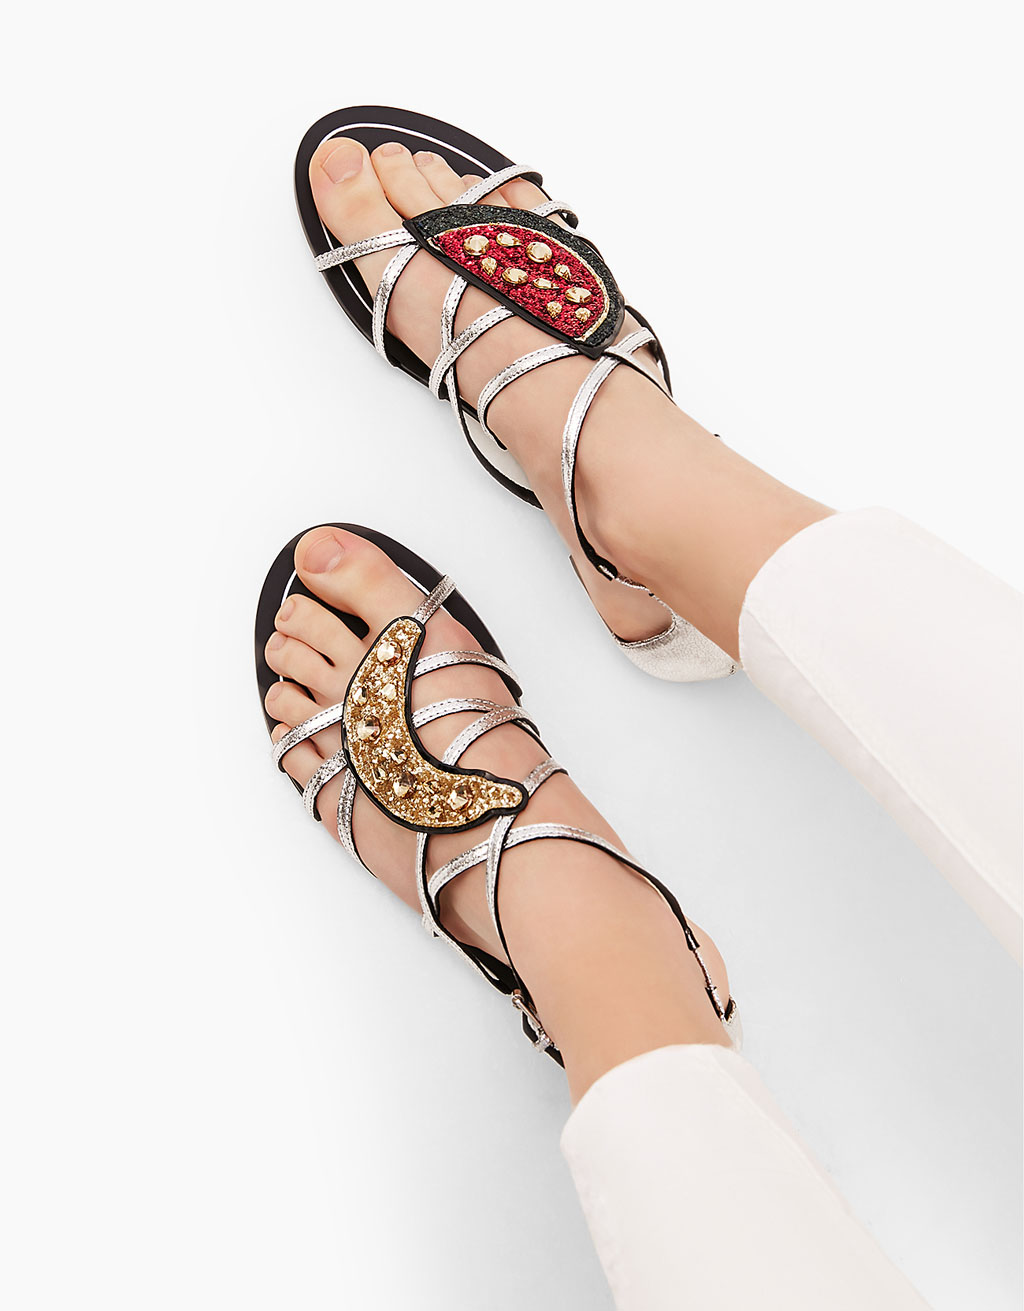 Flat sandals with metallic straps and gems